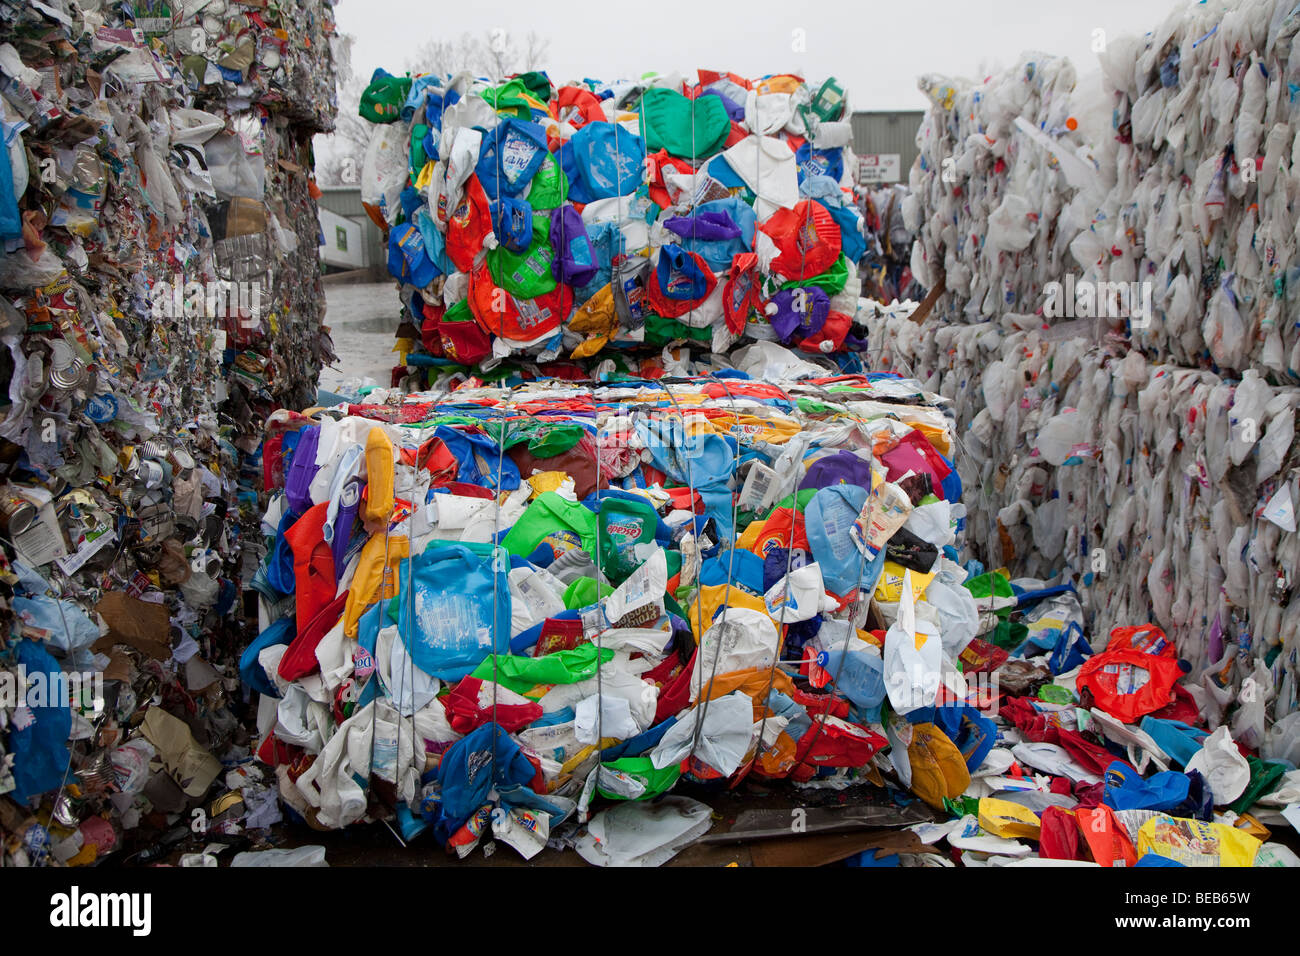 Roseville, Michigan - Plastic bottles baled for recycling at Great Lakes Recycling. - Stock Image